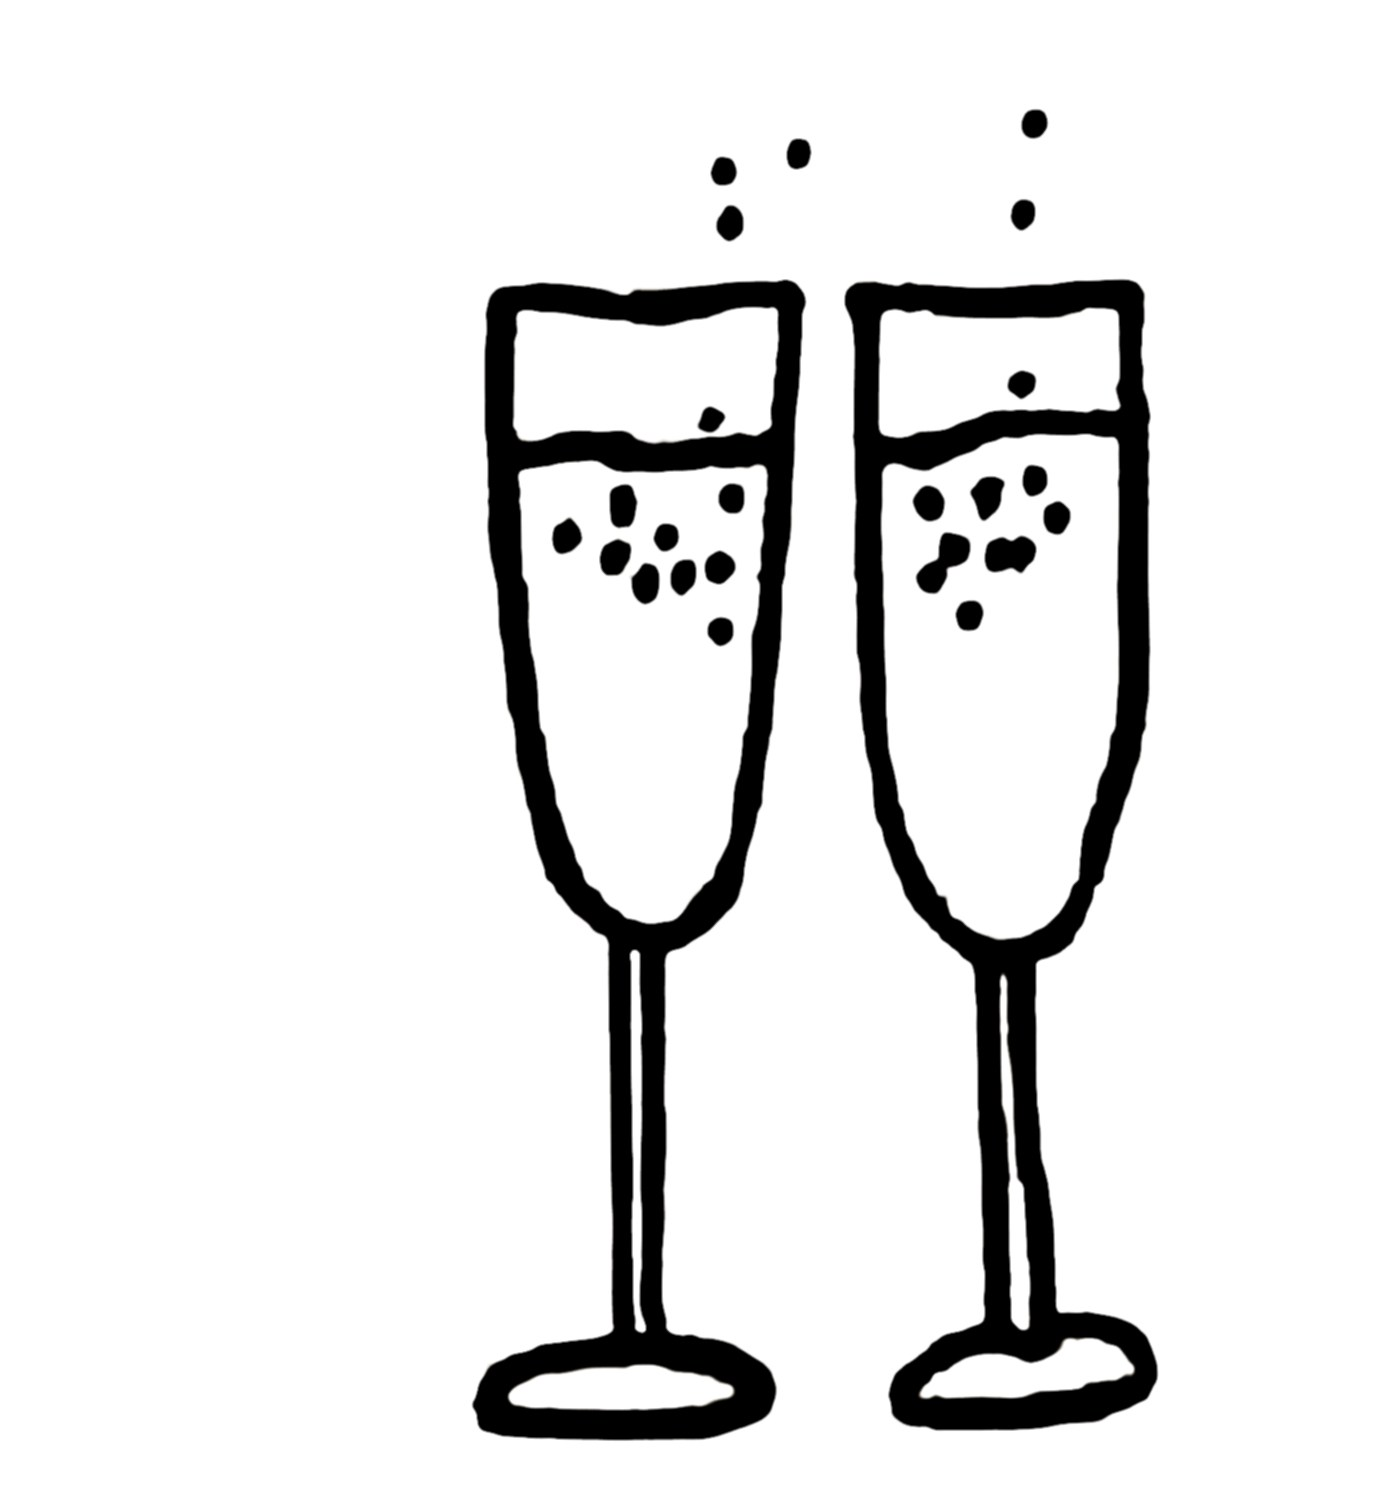 Free clipart pictures of champagne glasses » Clipart Portal.